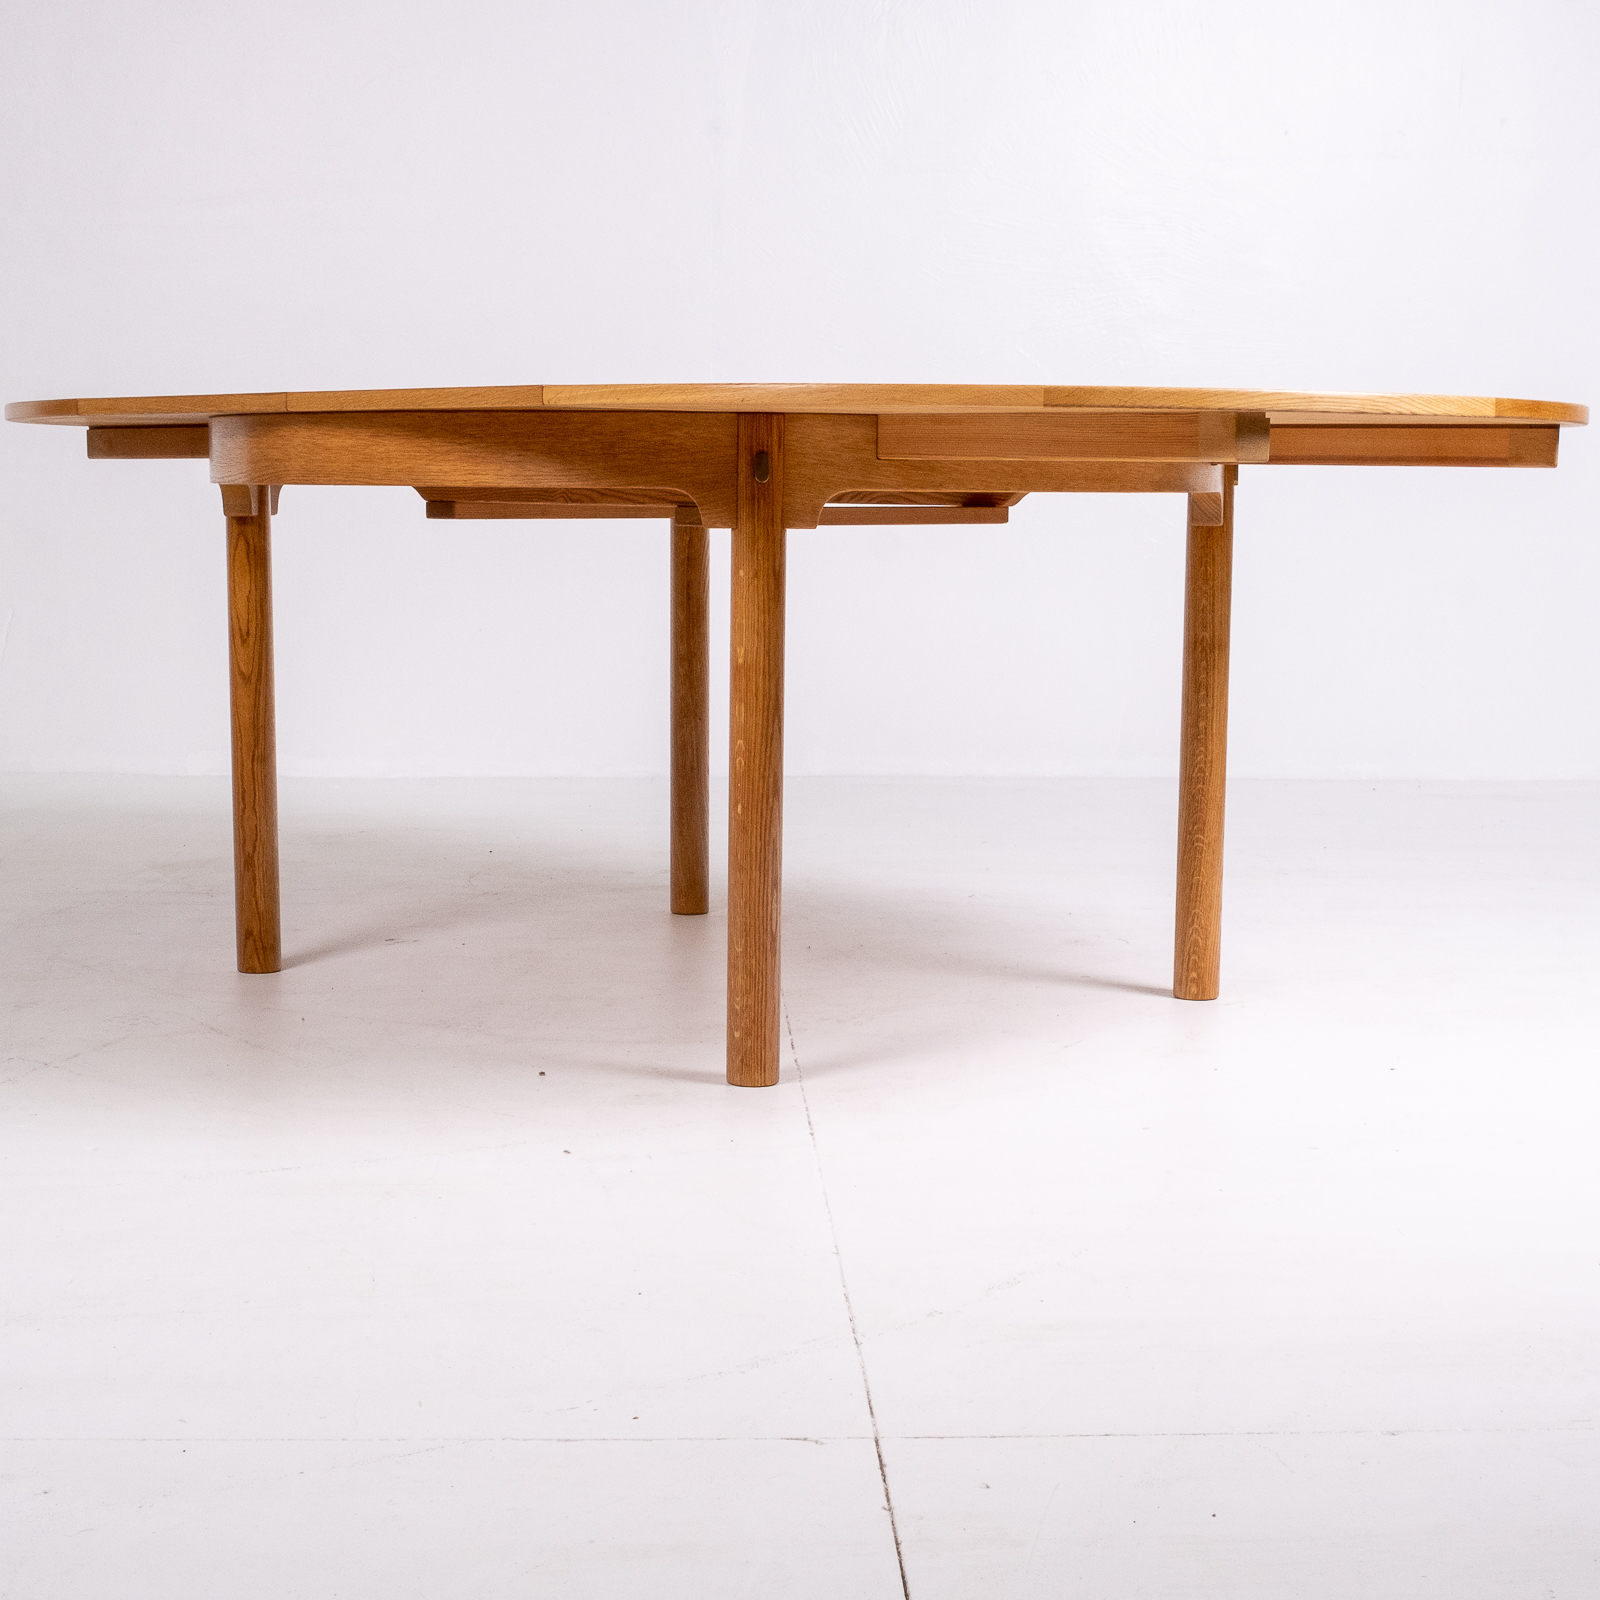 Round 140 Dining Table By Borge Mogensen For Karl Andersson & Söner In Oak With Butterfly Extensions, 1960s, Denmark78